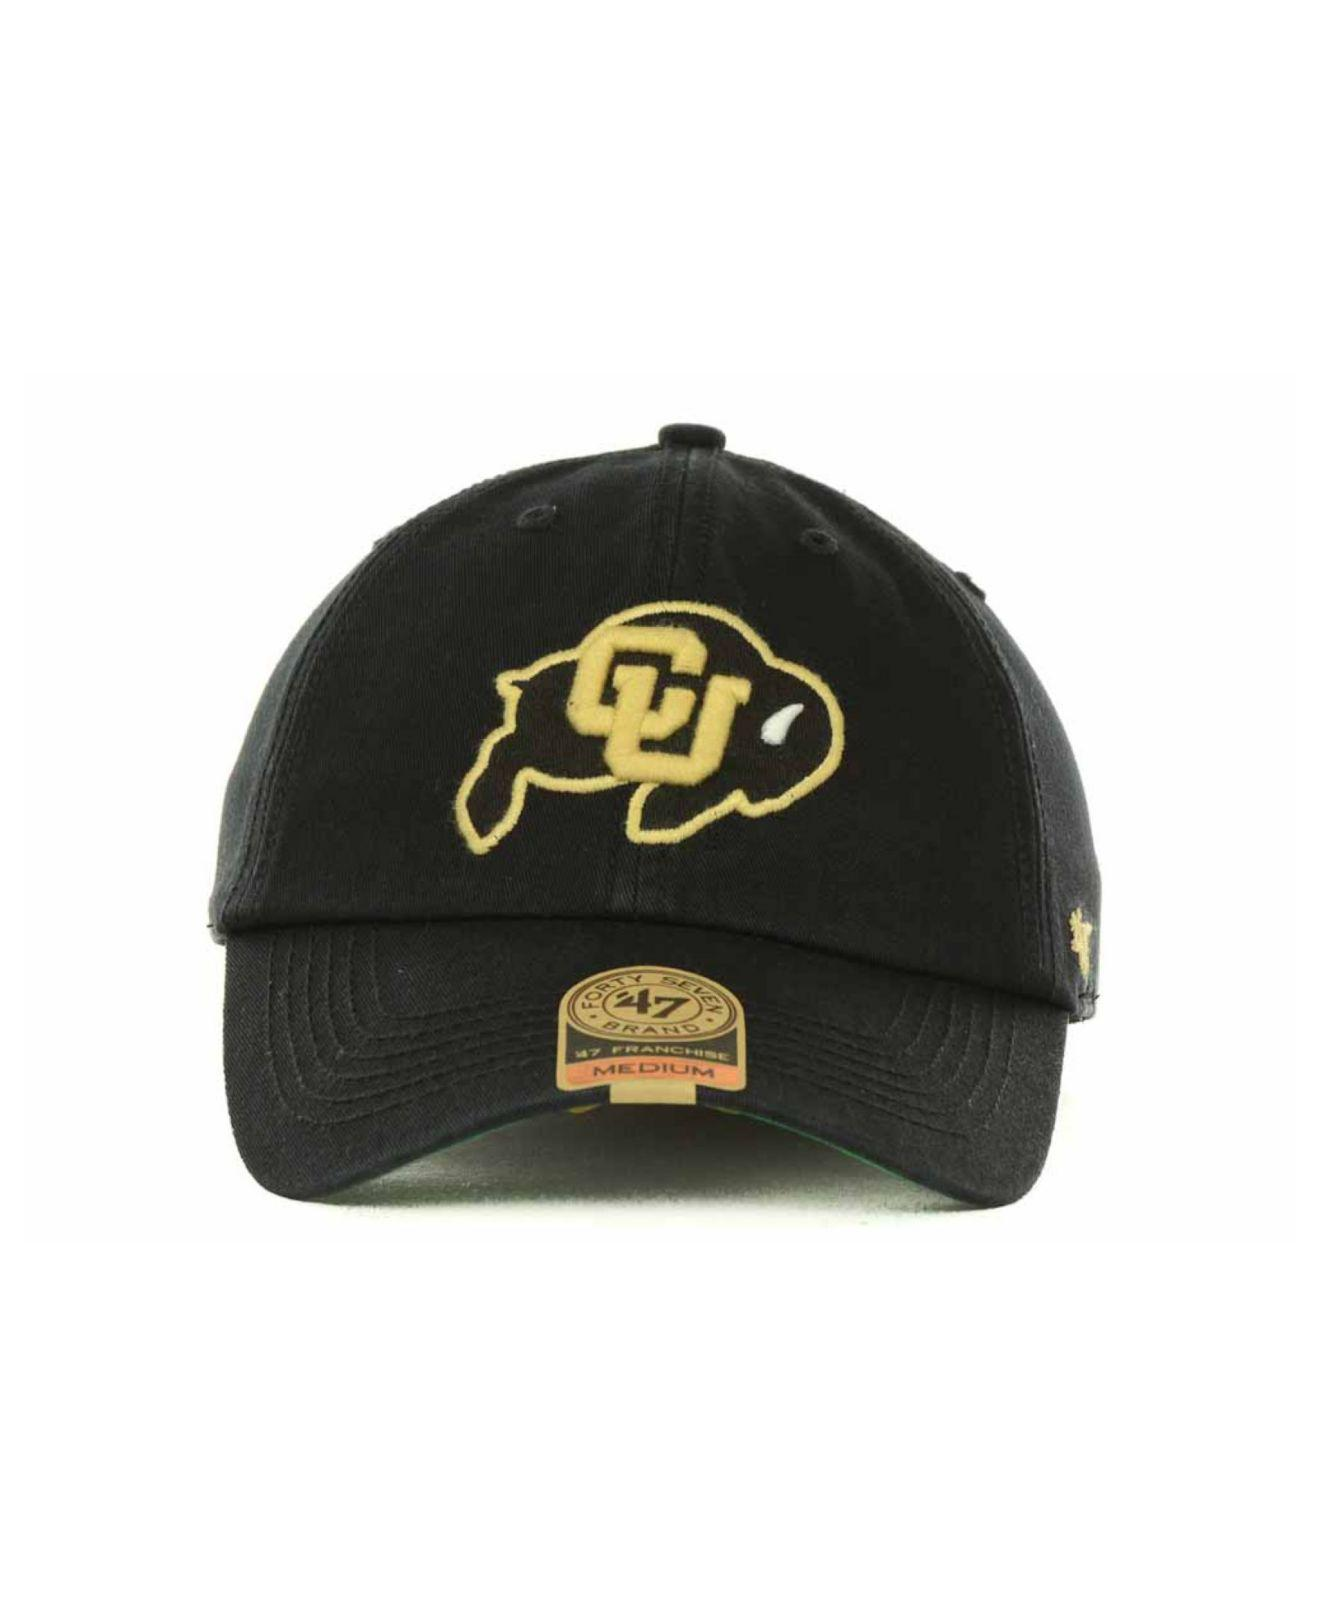 best service 1e6bb 09bfb ... real lyst 47 brand colorado buffaloes franchise cap in black for men  ef239 b6e8c